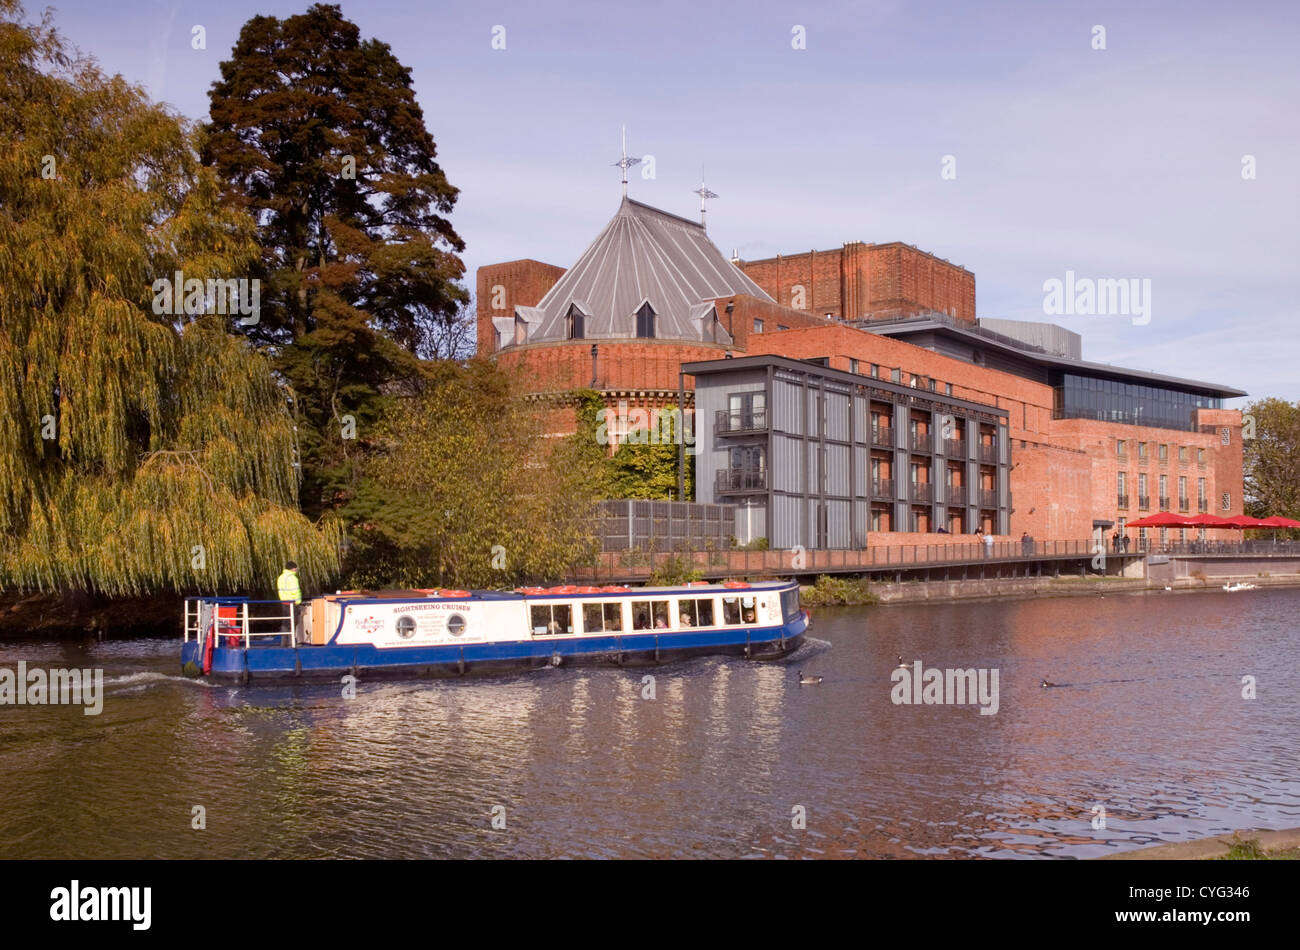 Warwickshire - Stratford upon Avon - tour boat passing RSC theatre on river Avon - autumn sunlight colours reflections - Stock Image